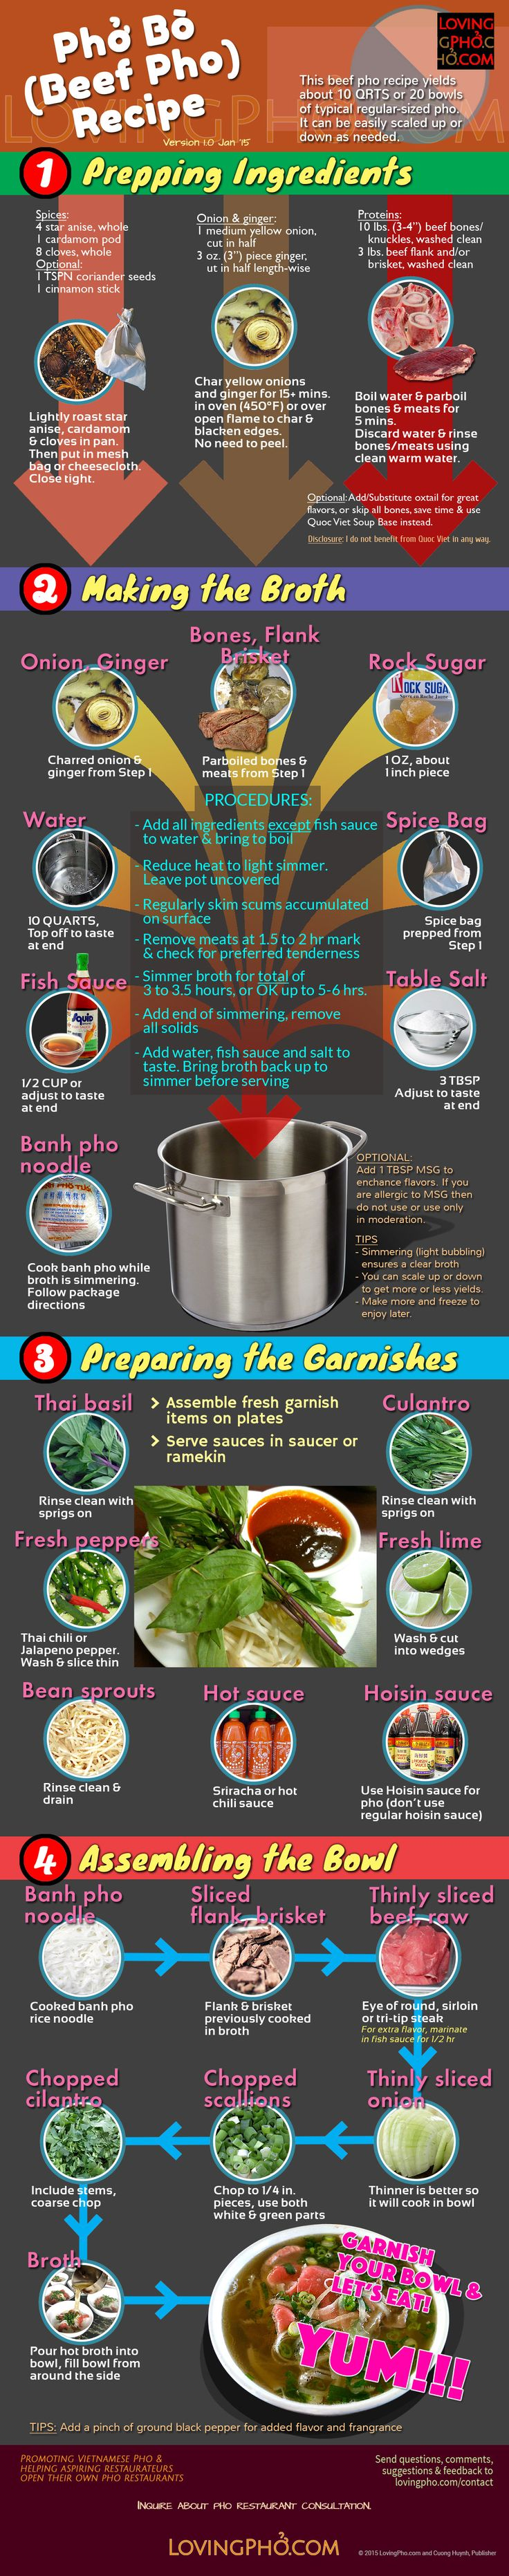 Love Pho? Authentic, Yummy Pho Recipe 101. Even your husband & Boyfriend can make it!